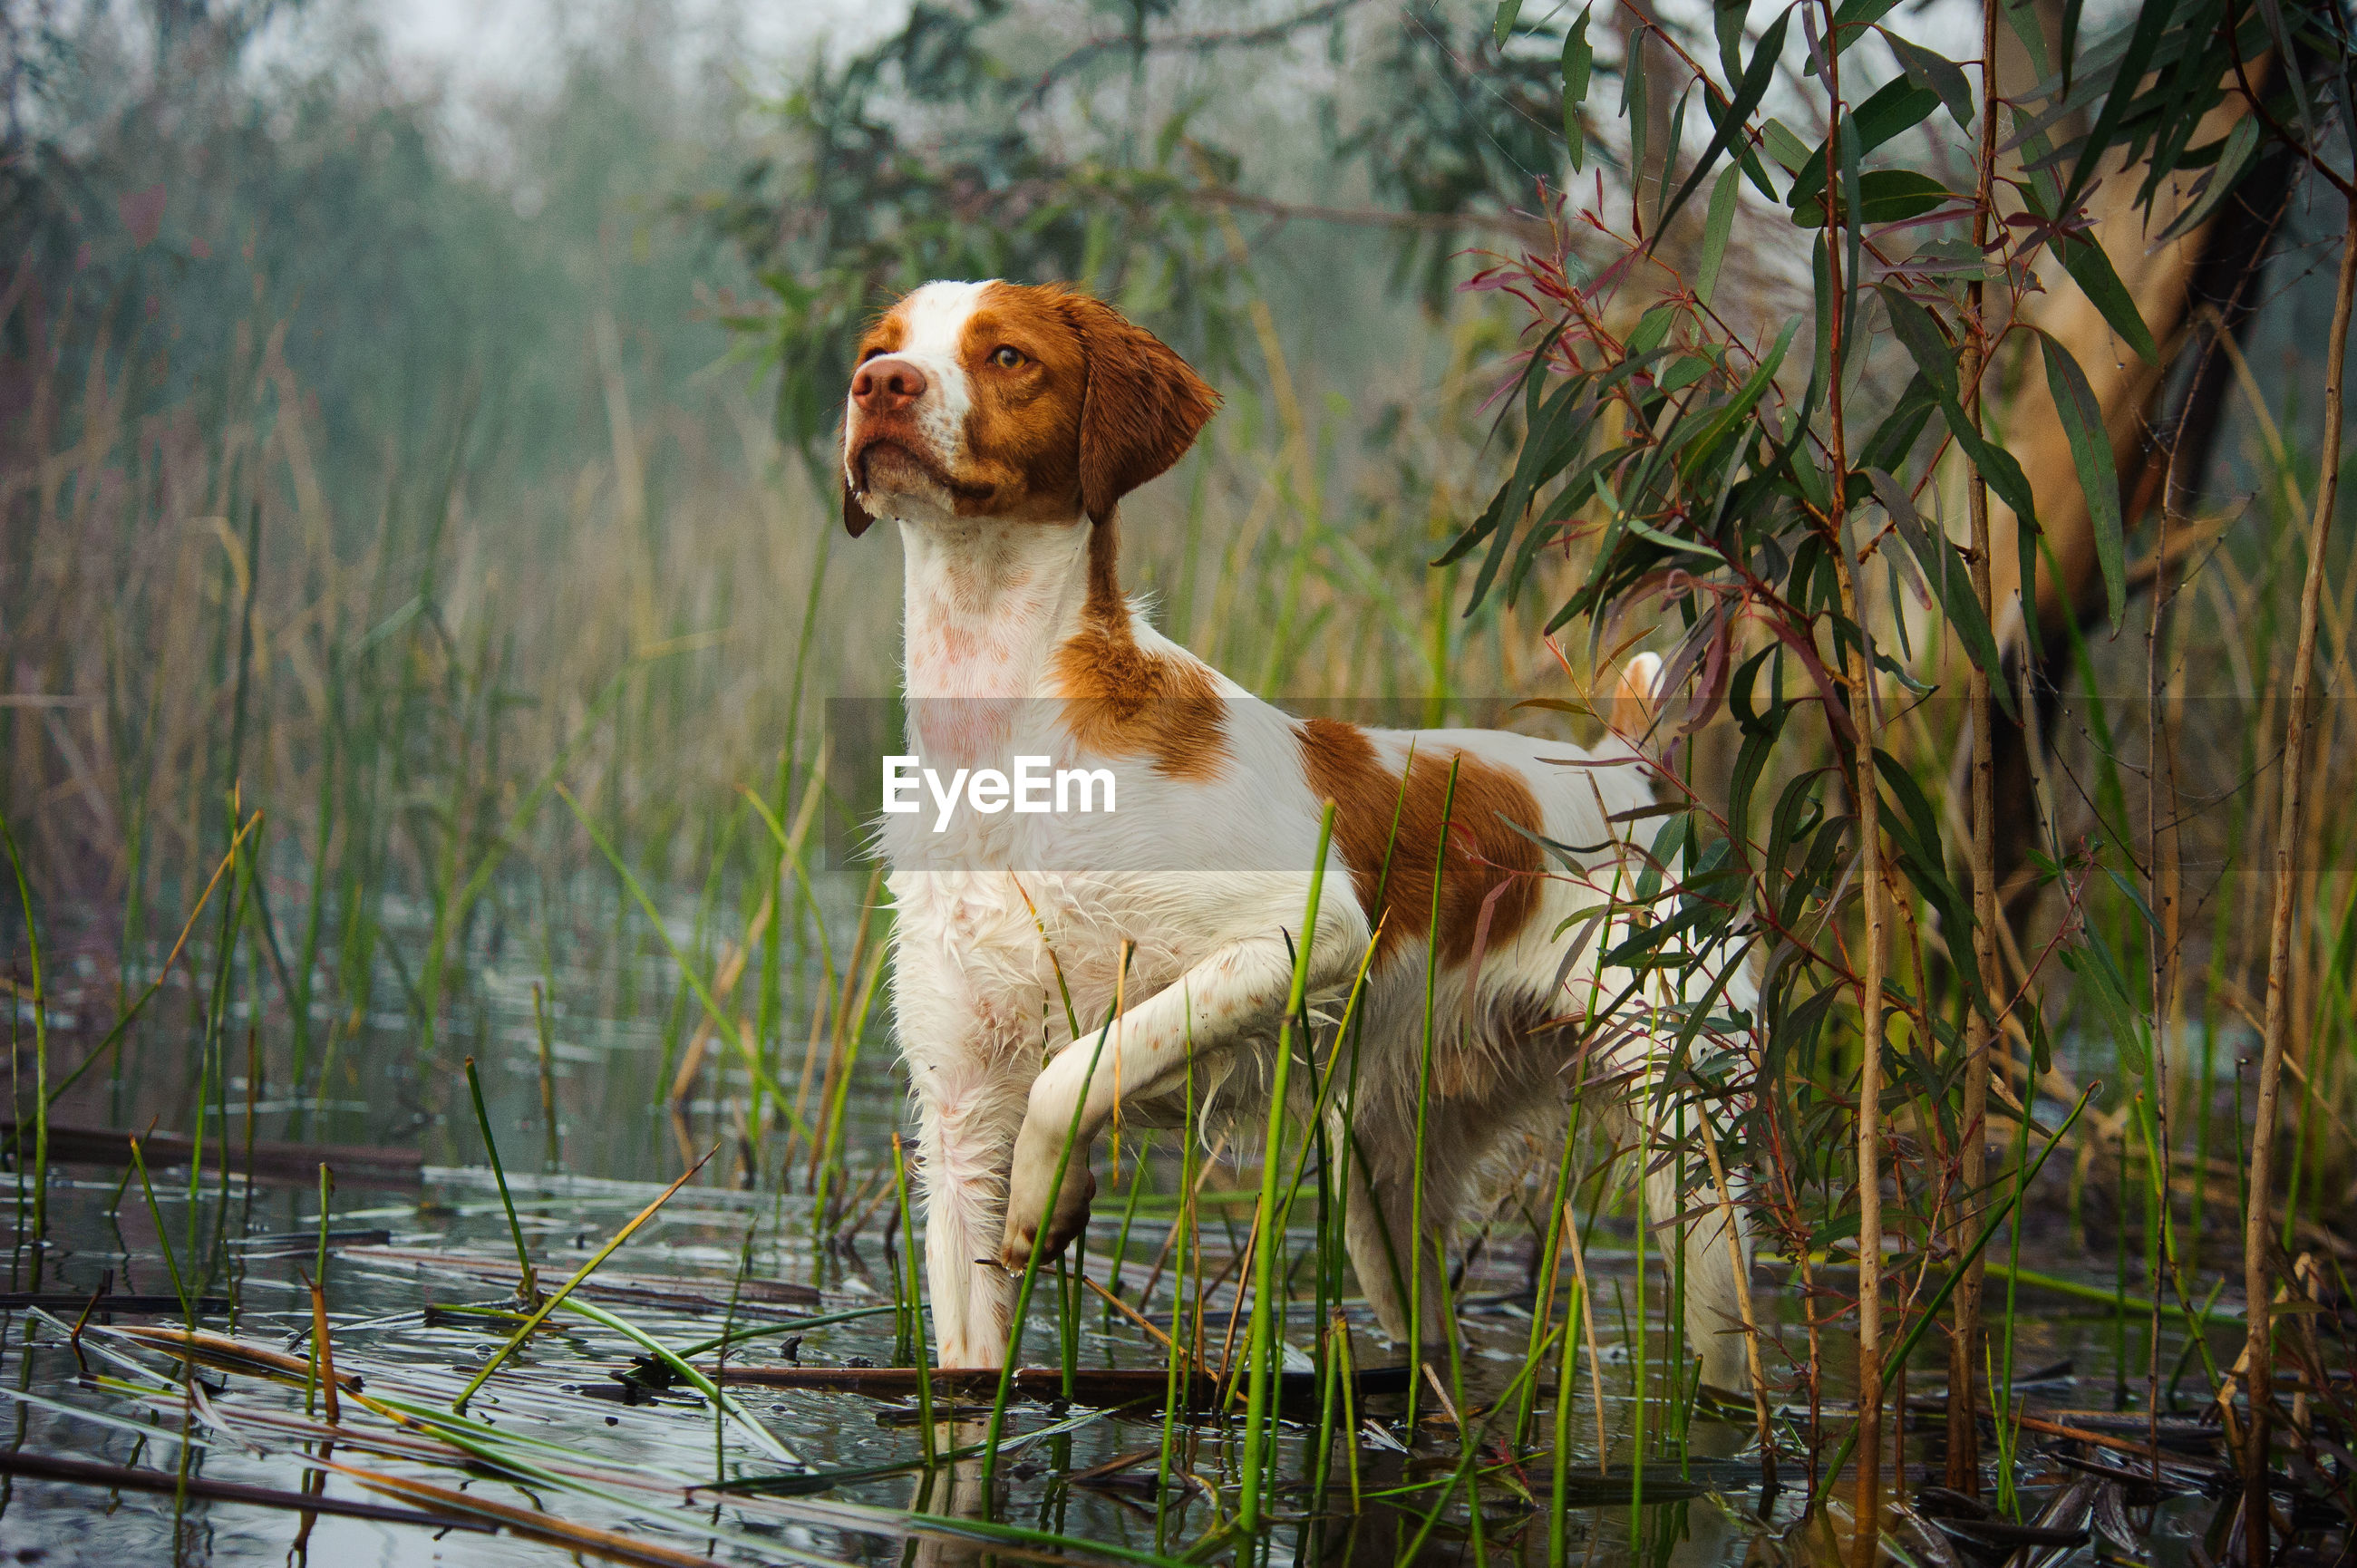 Alert dog in shallow water looking away